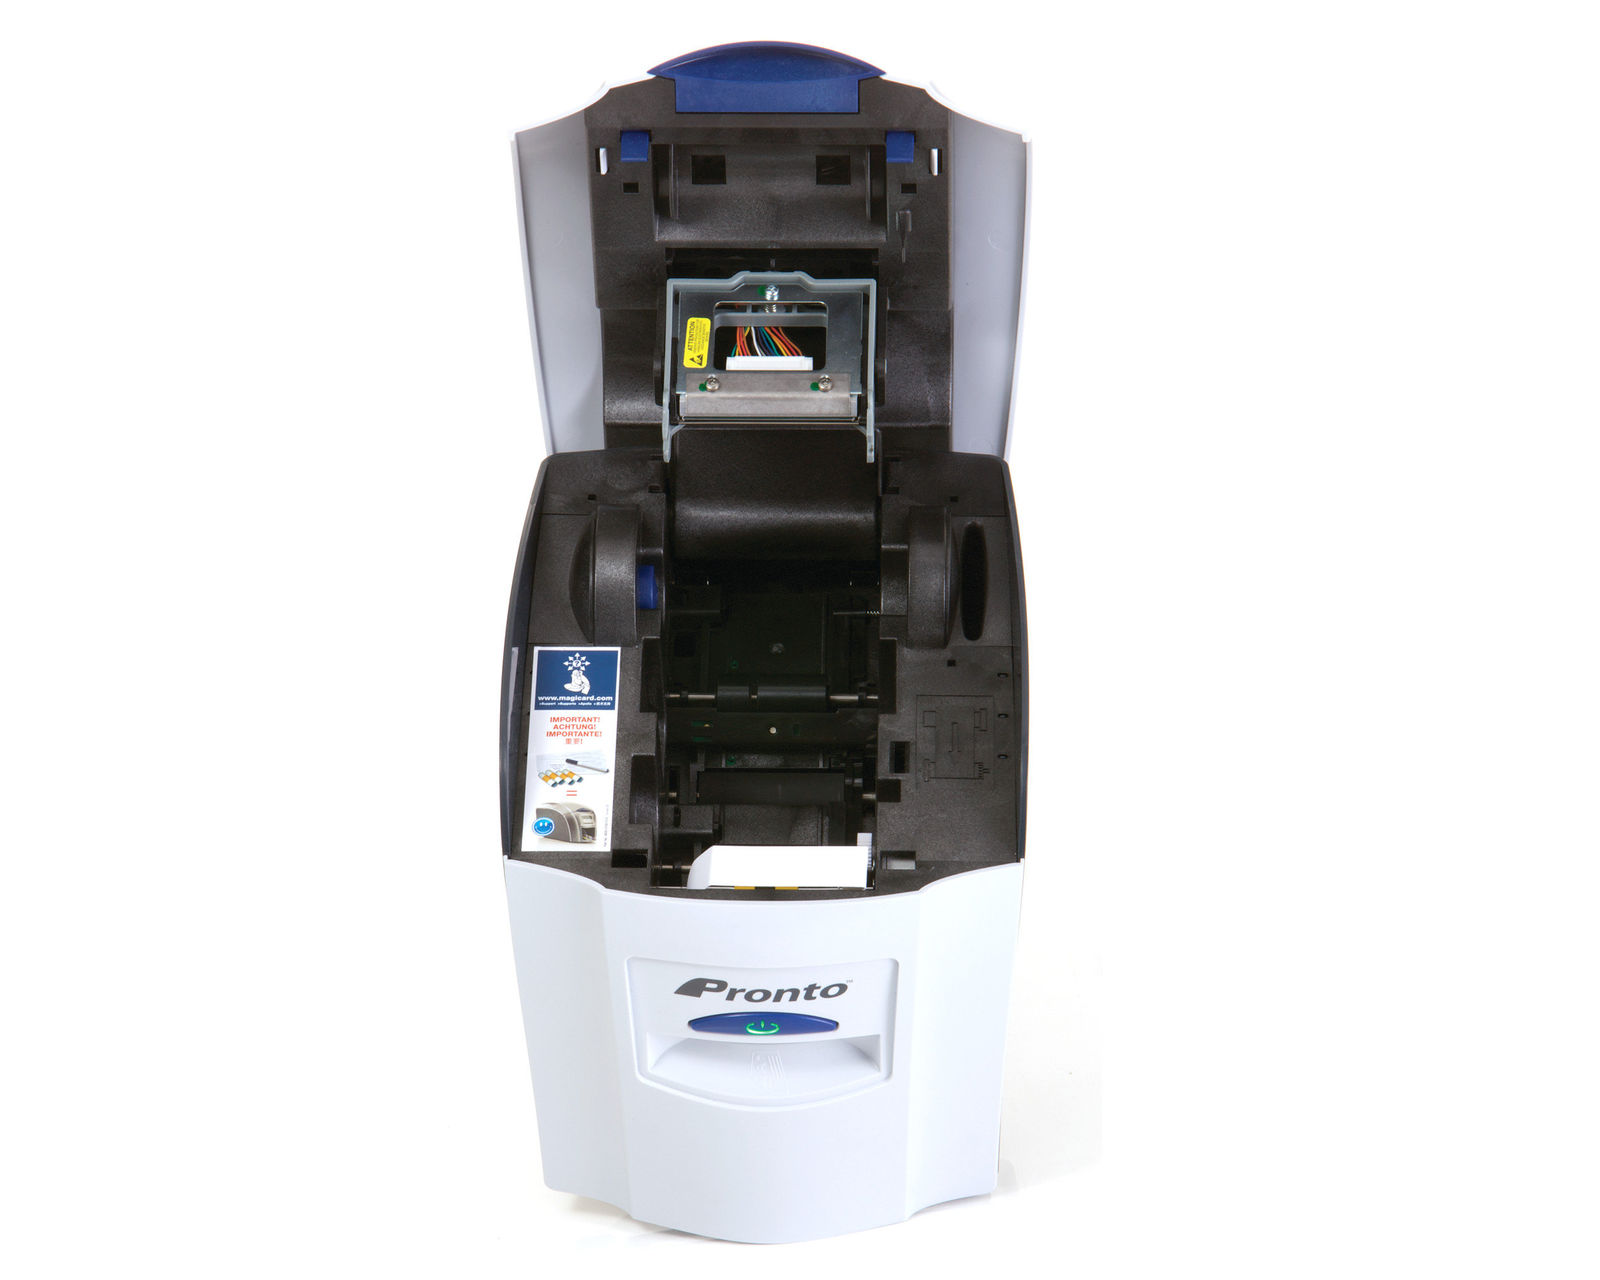 Magicard pronto id card printer only 455 lesar uk magicard pronto id card printer reheart Gallery